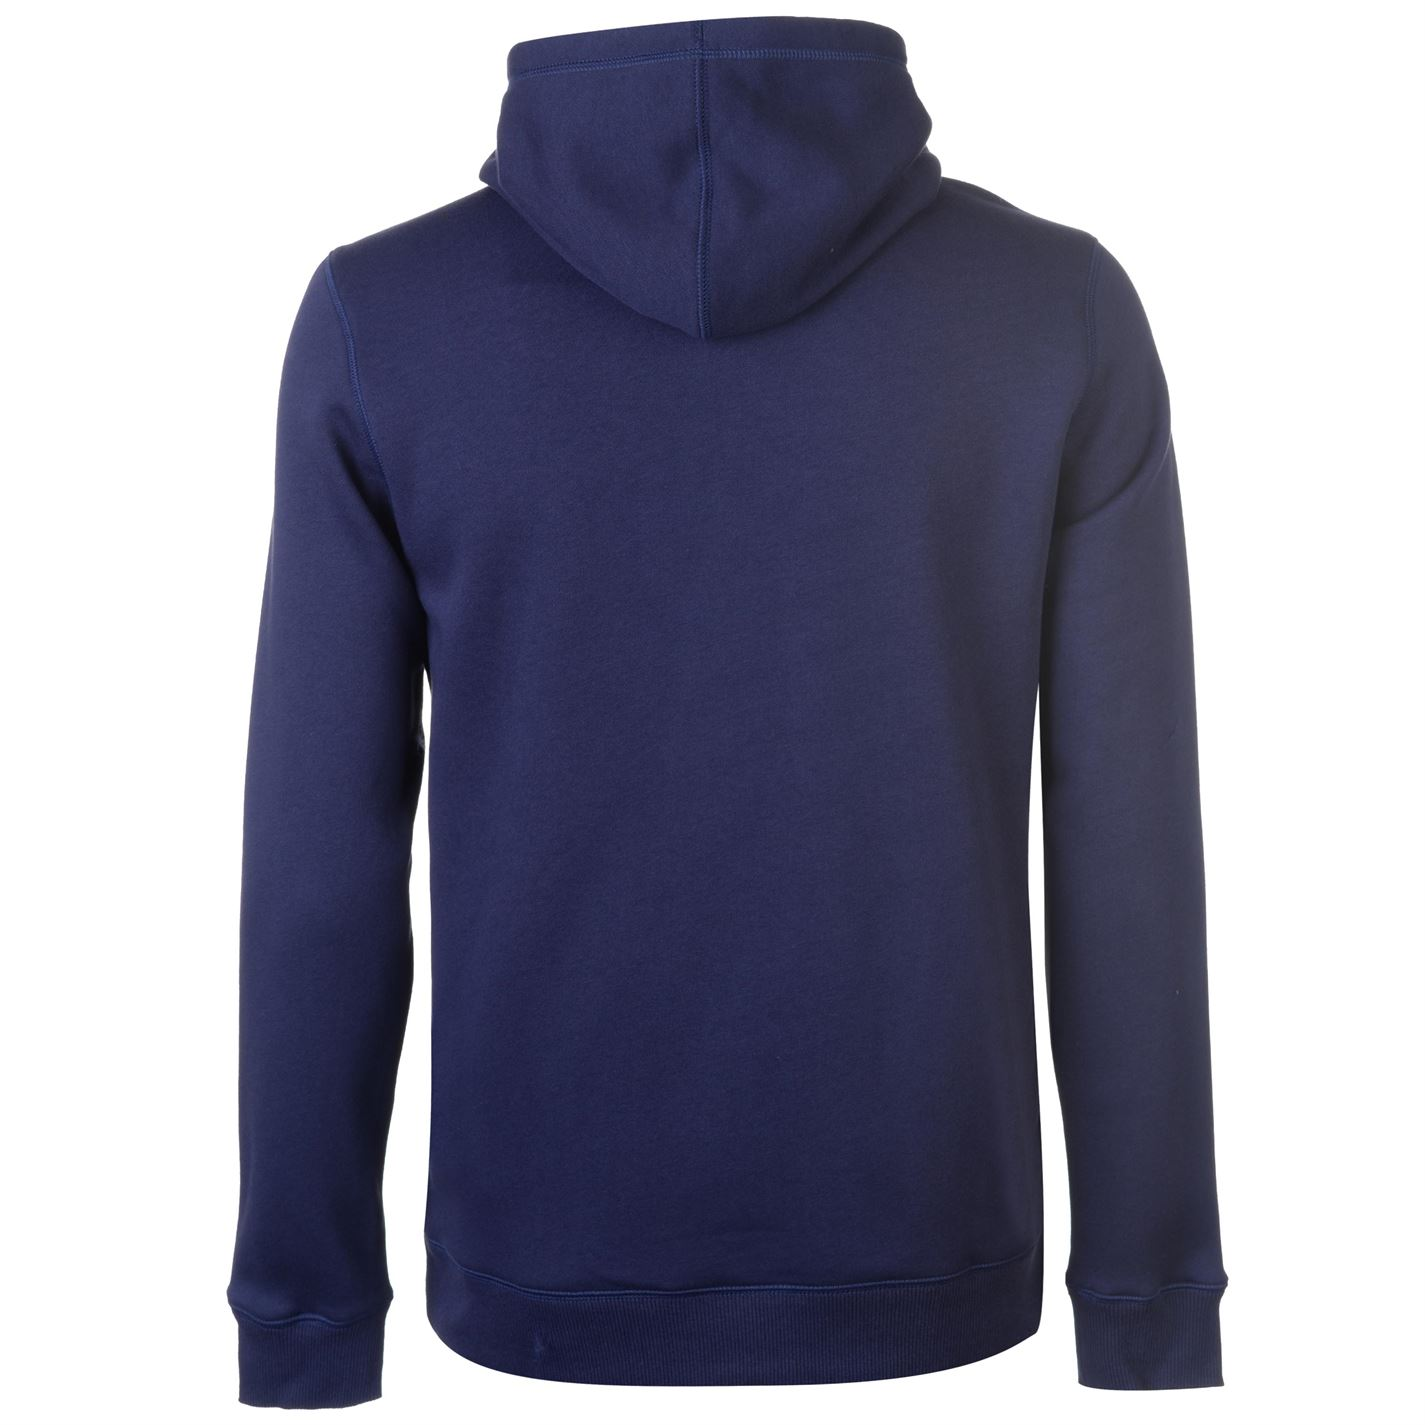 Grey Under Armour Rival Mens Fitted Pull Over Training Hoody